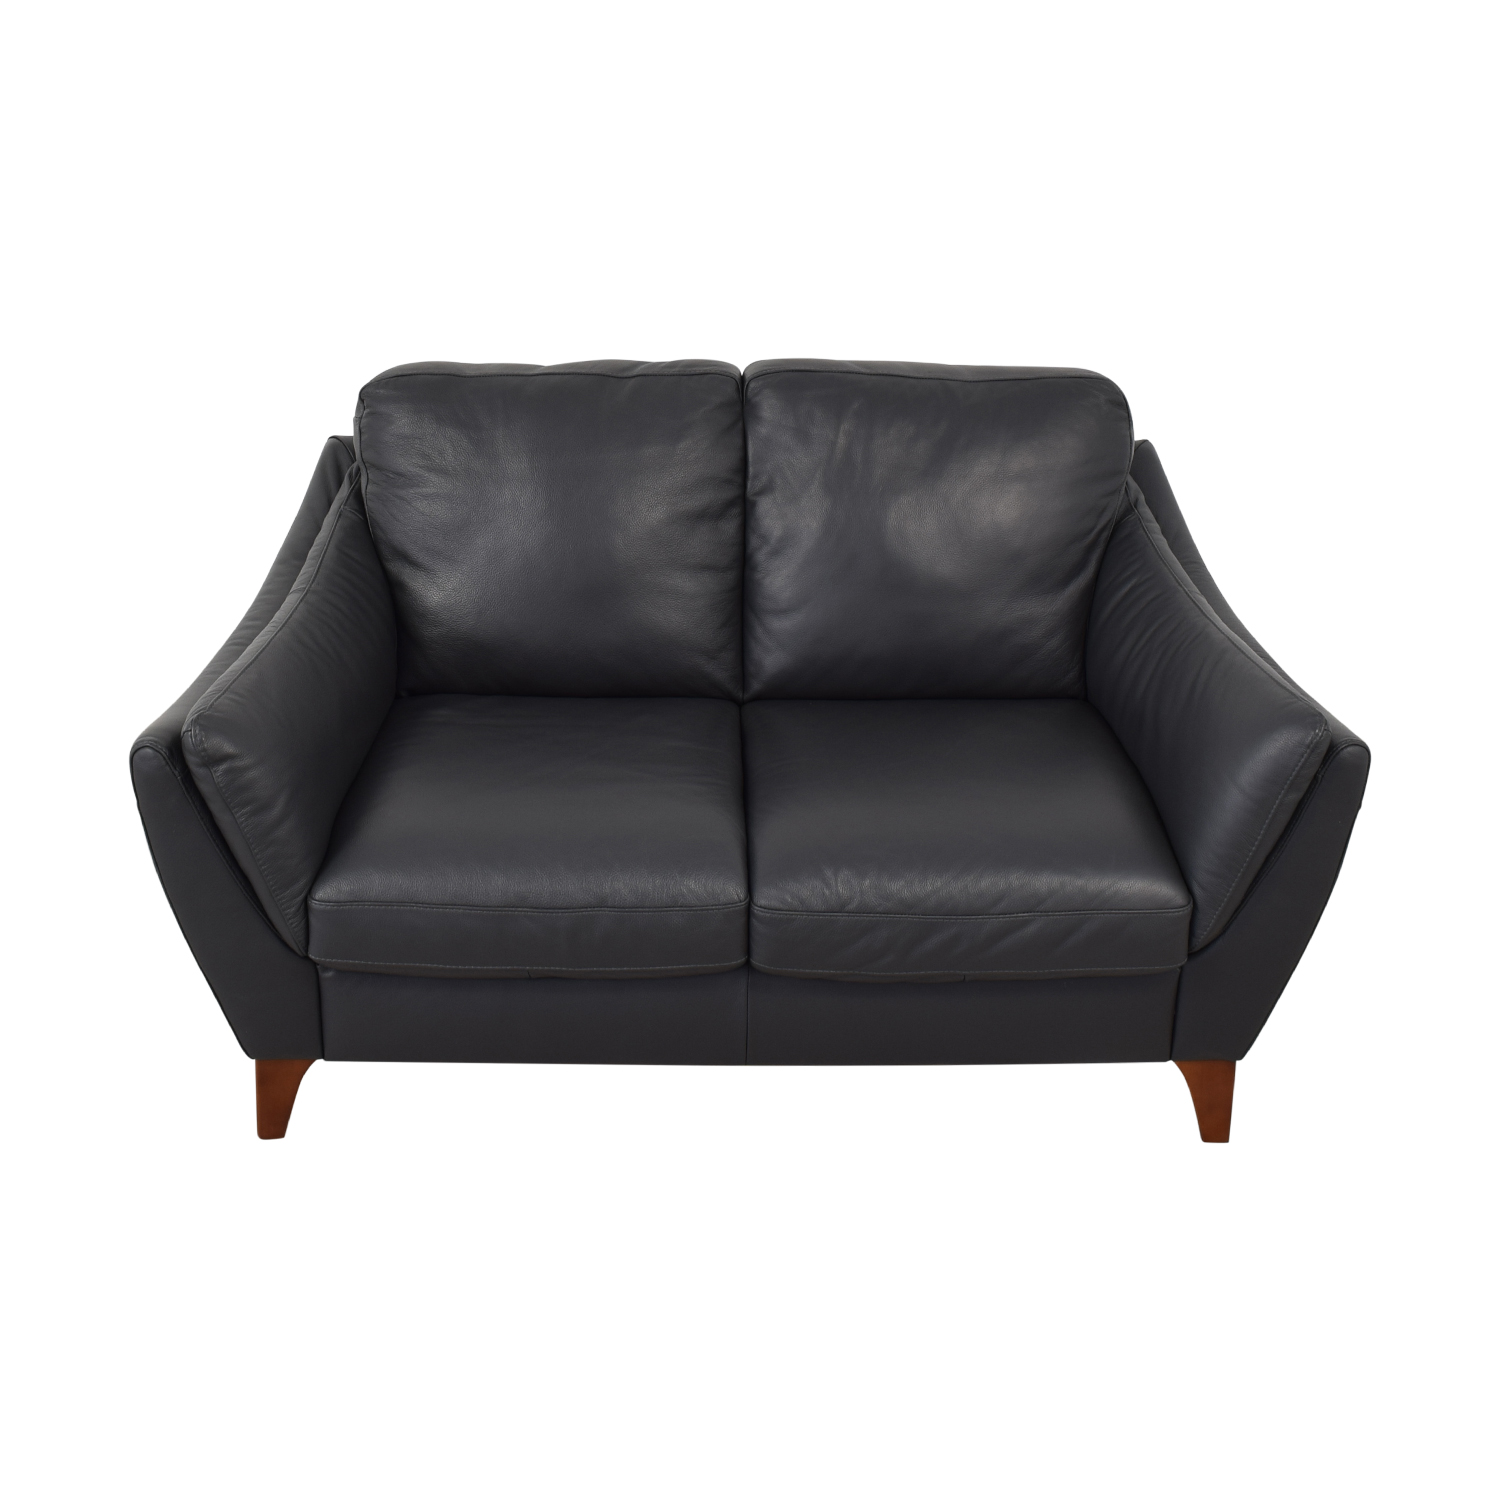 Raymour & Flanigan Raymour & Flanigan Greccio Leather Loveseat price